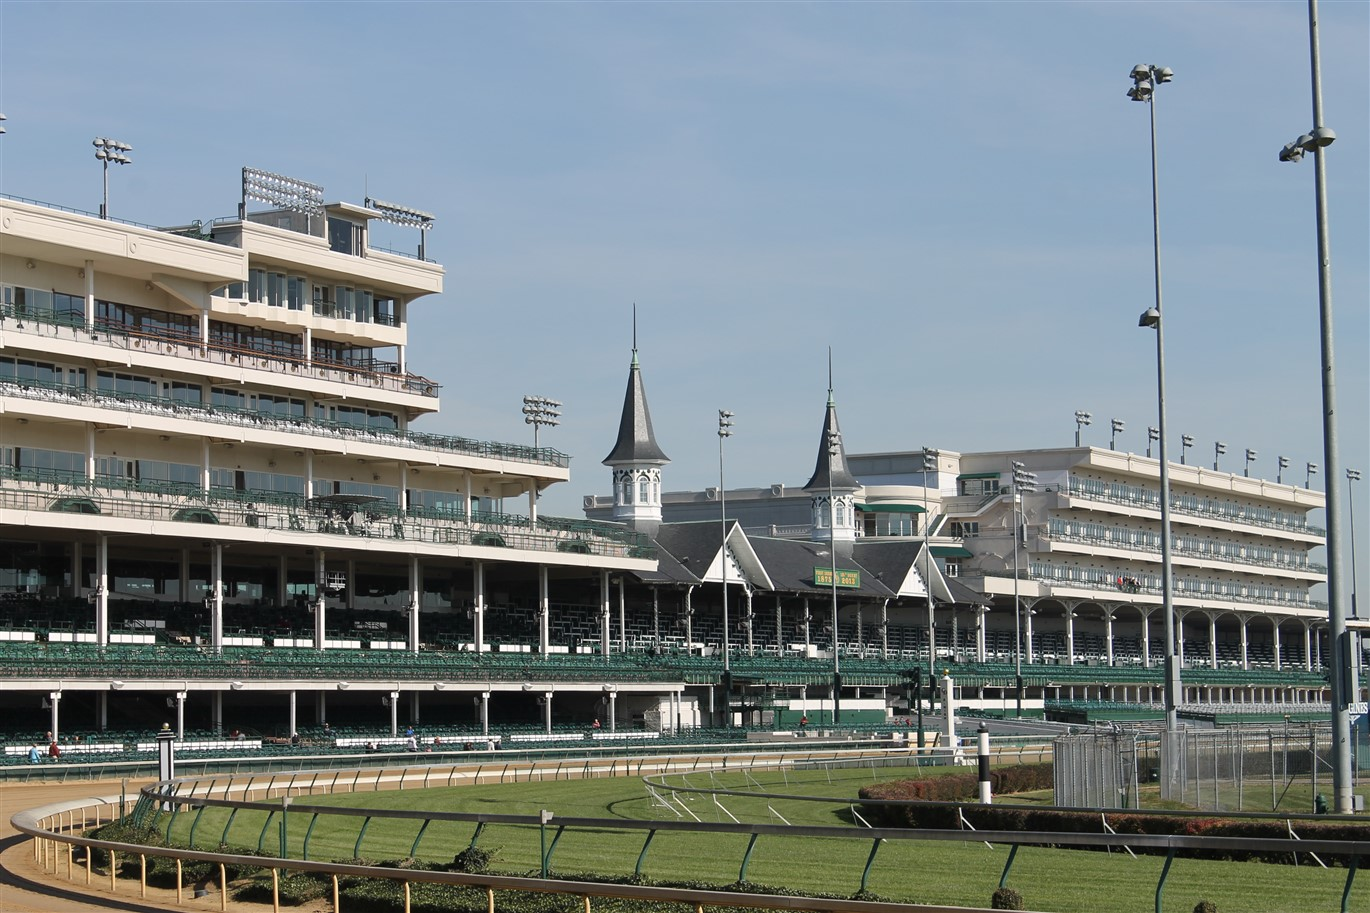 2013 10 27 101 Churchill Downs Louisville.jpg